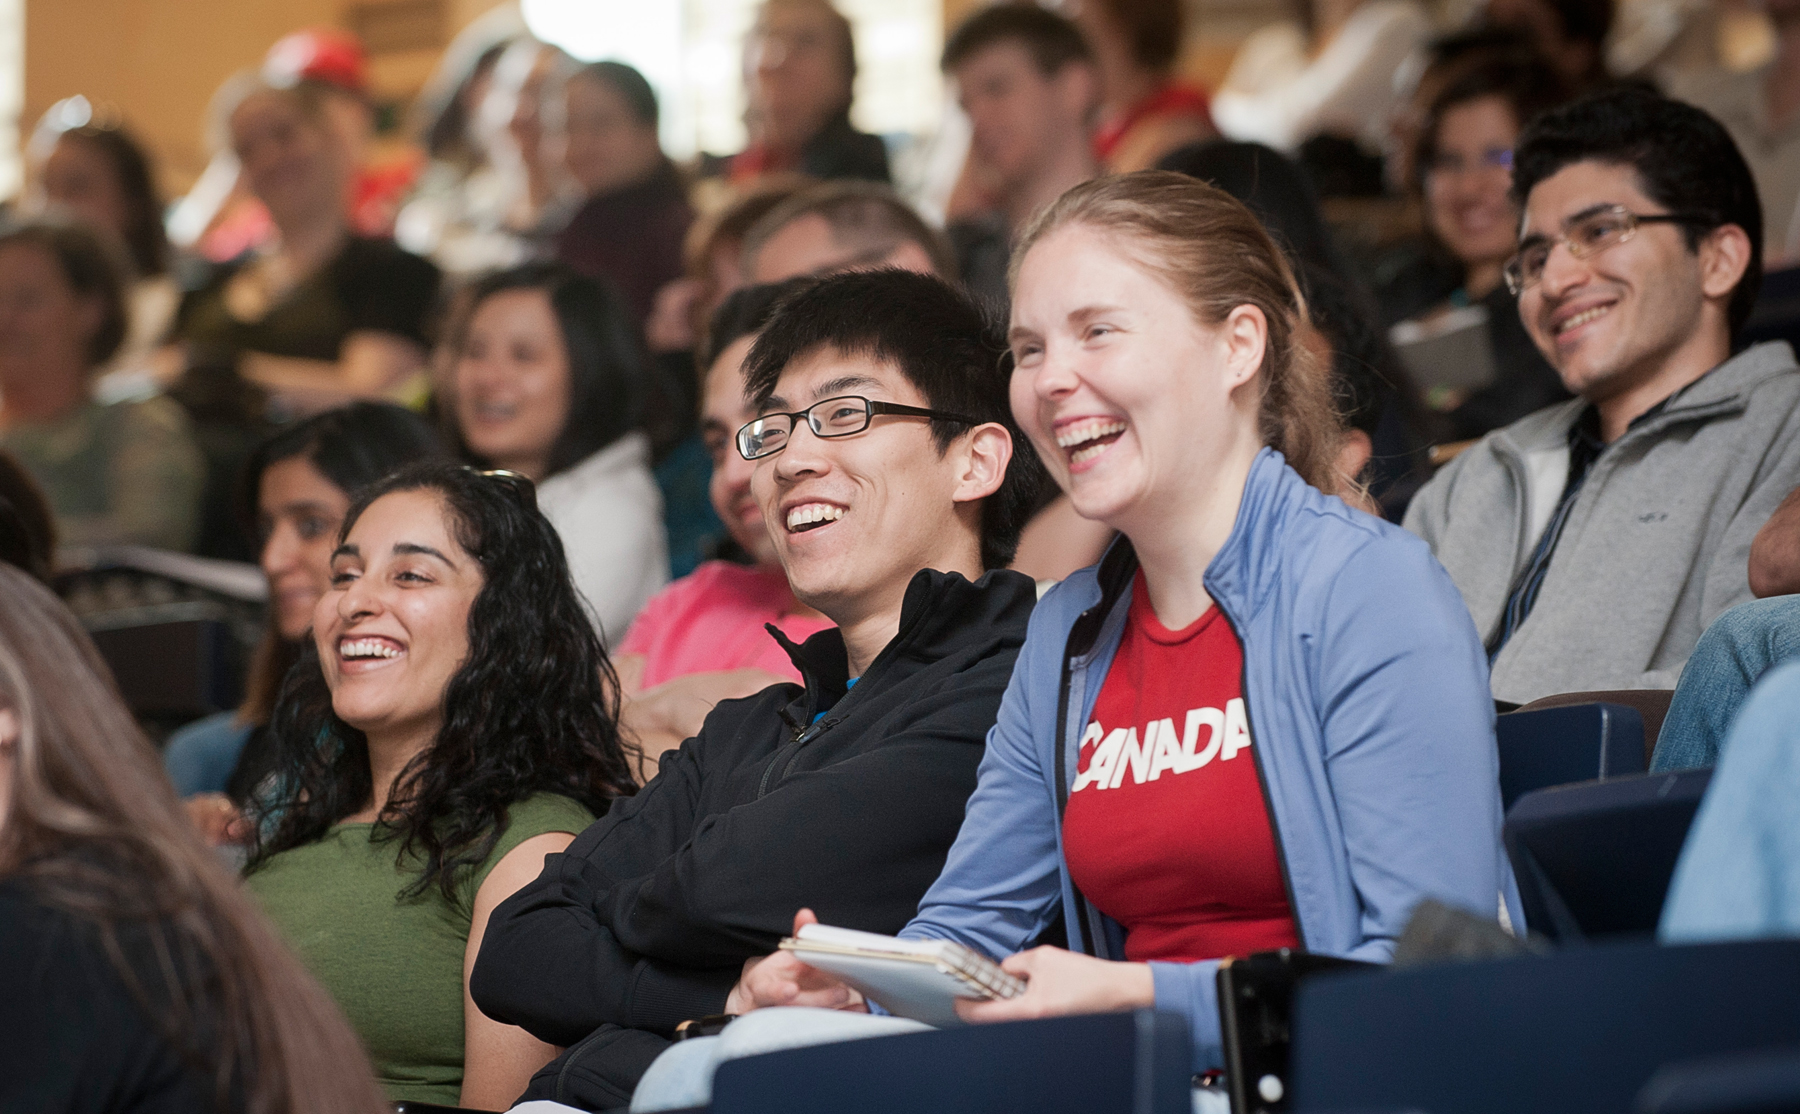 Students laughing in a classroom.